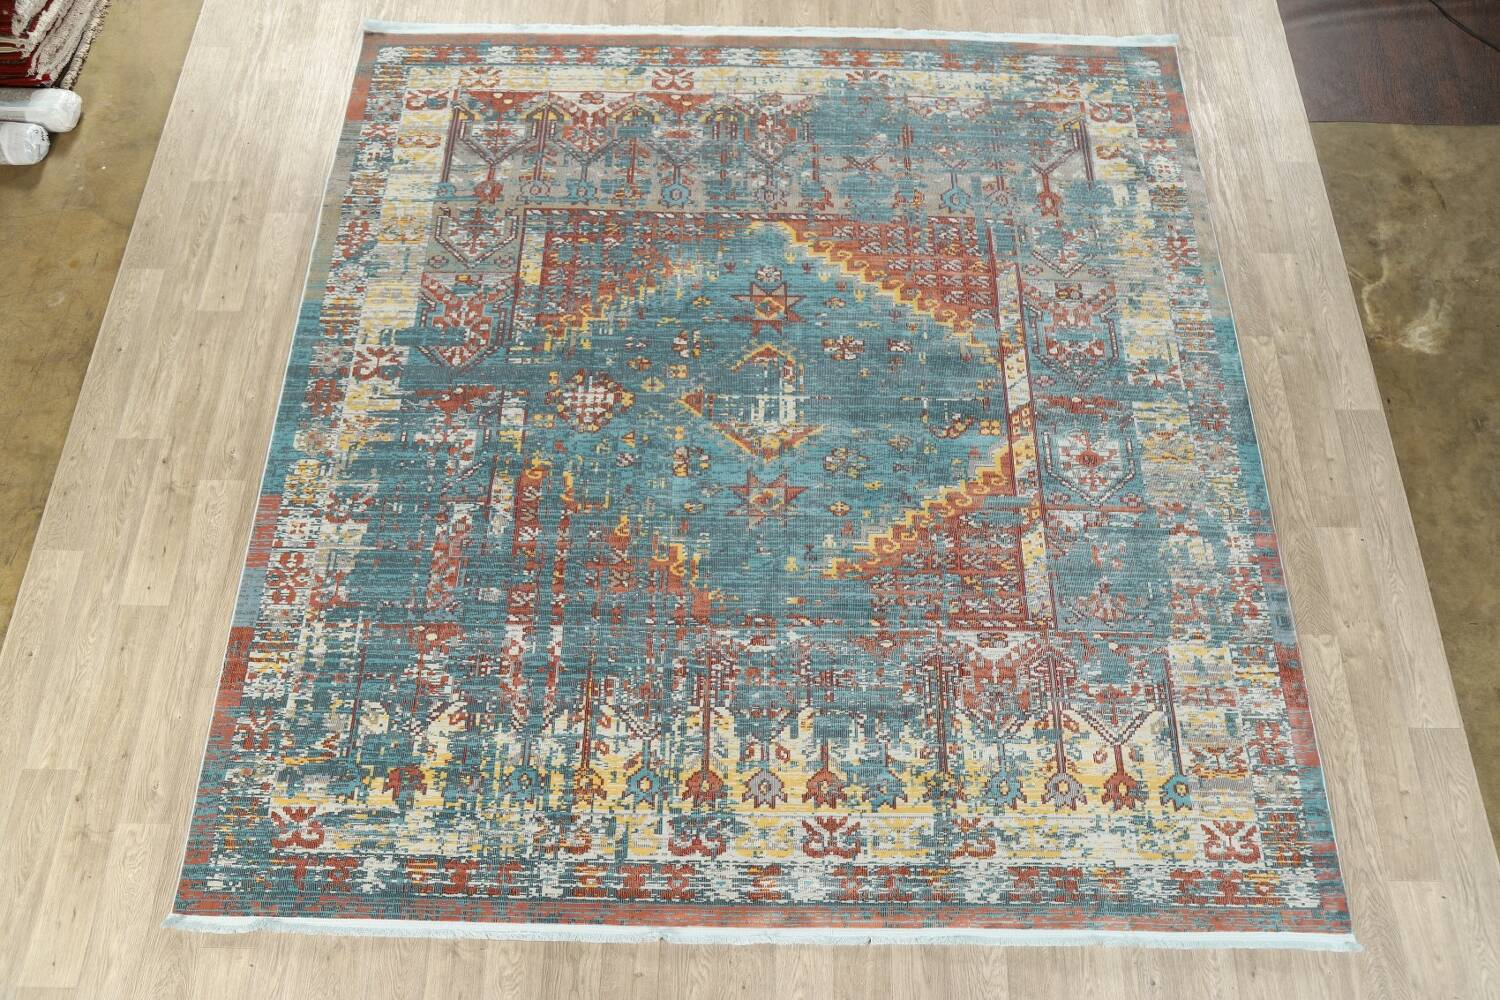 Vintage Style Distressed Heat-Set Area Rugs image 51